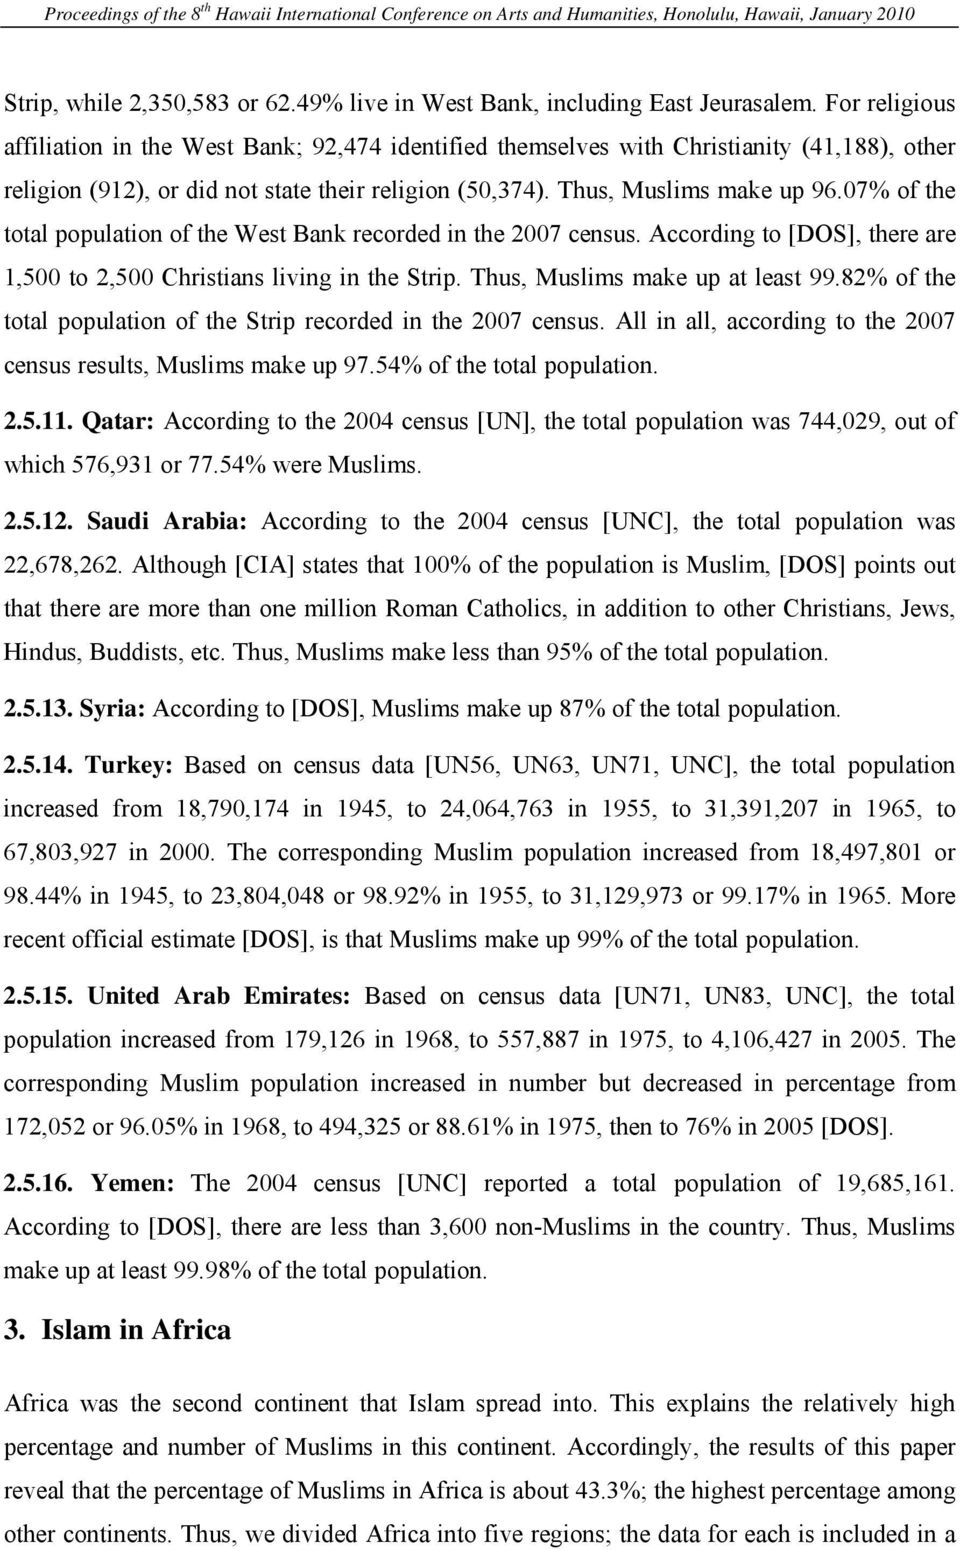 07% of the total population of the West Bank recorded in the 2007 census. According to [DOS], there are 1,500 to 2,500 Christians living in the Strip. Thus, Muslims make up at least 99.